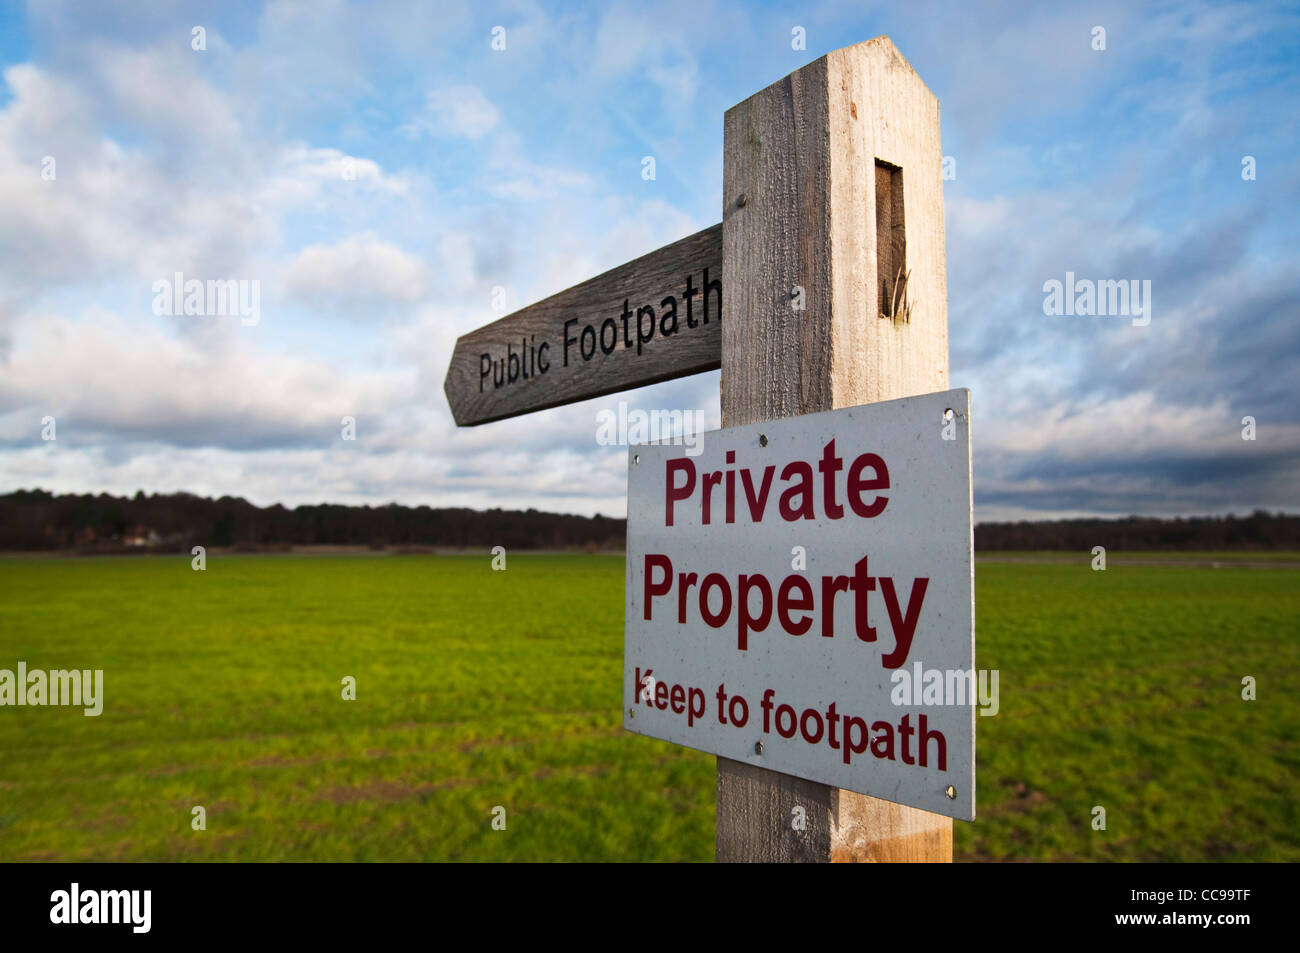 Public footpath finger post with private property sign affixed by landowner Stock Photo